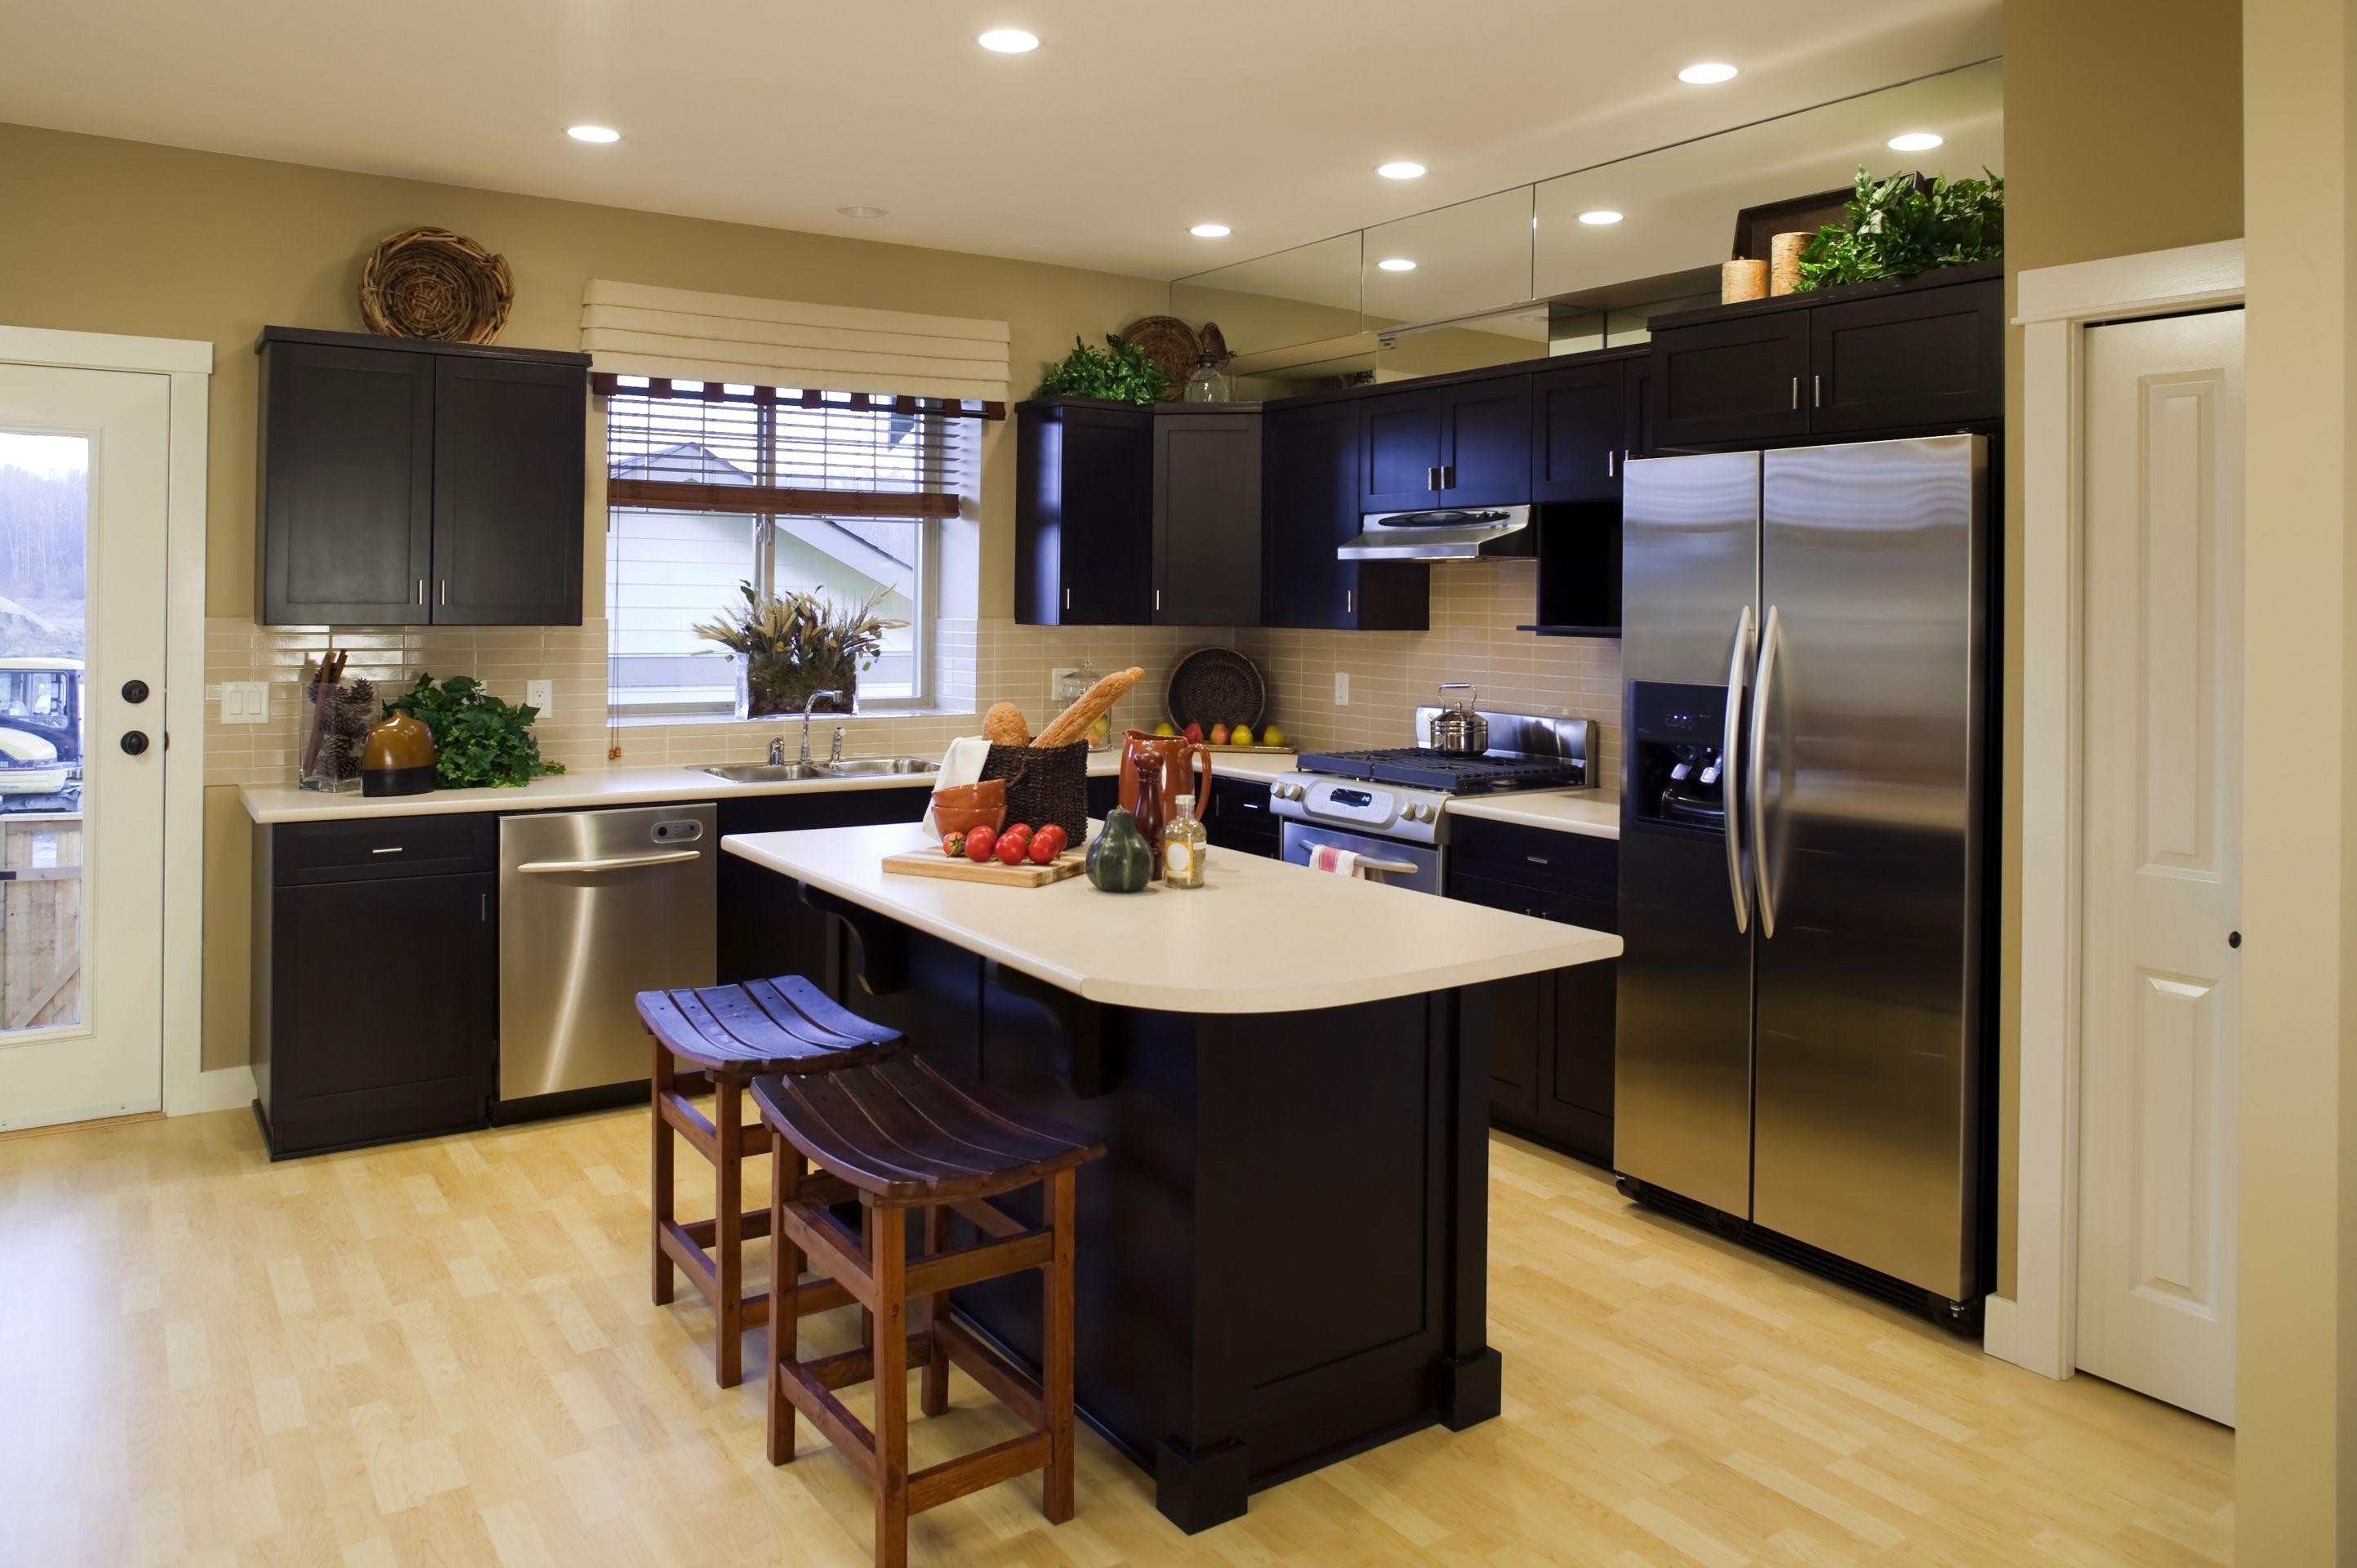 can laminate flooring be used in kitchens?